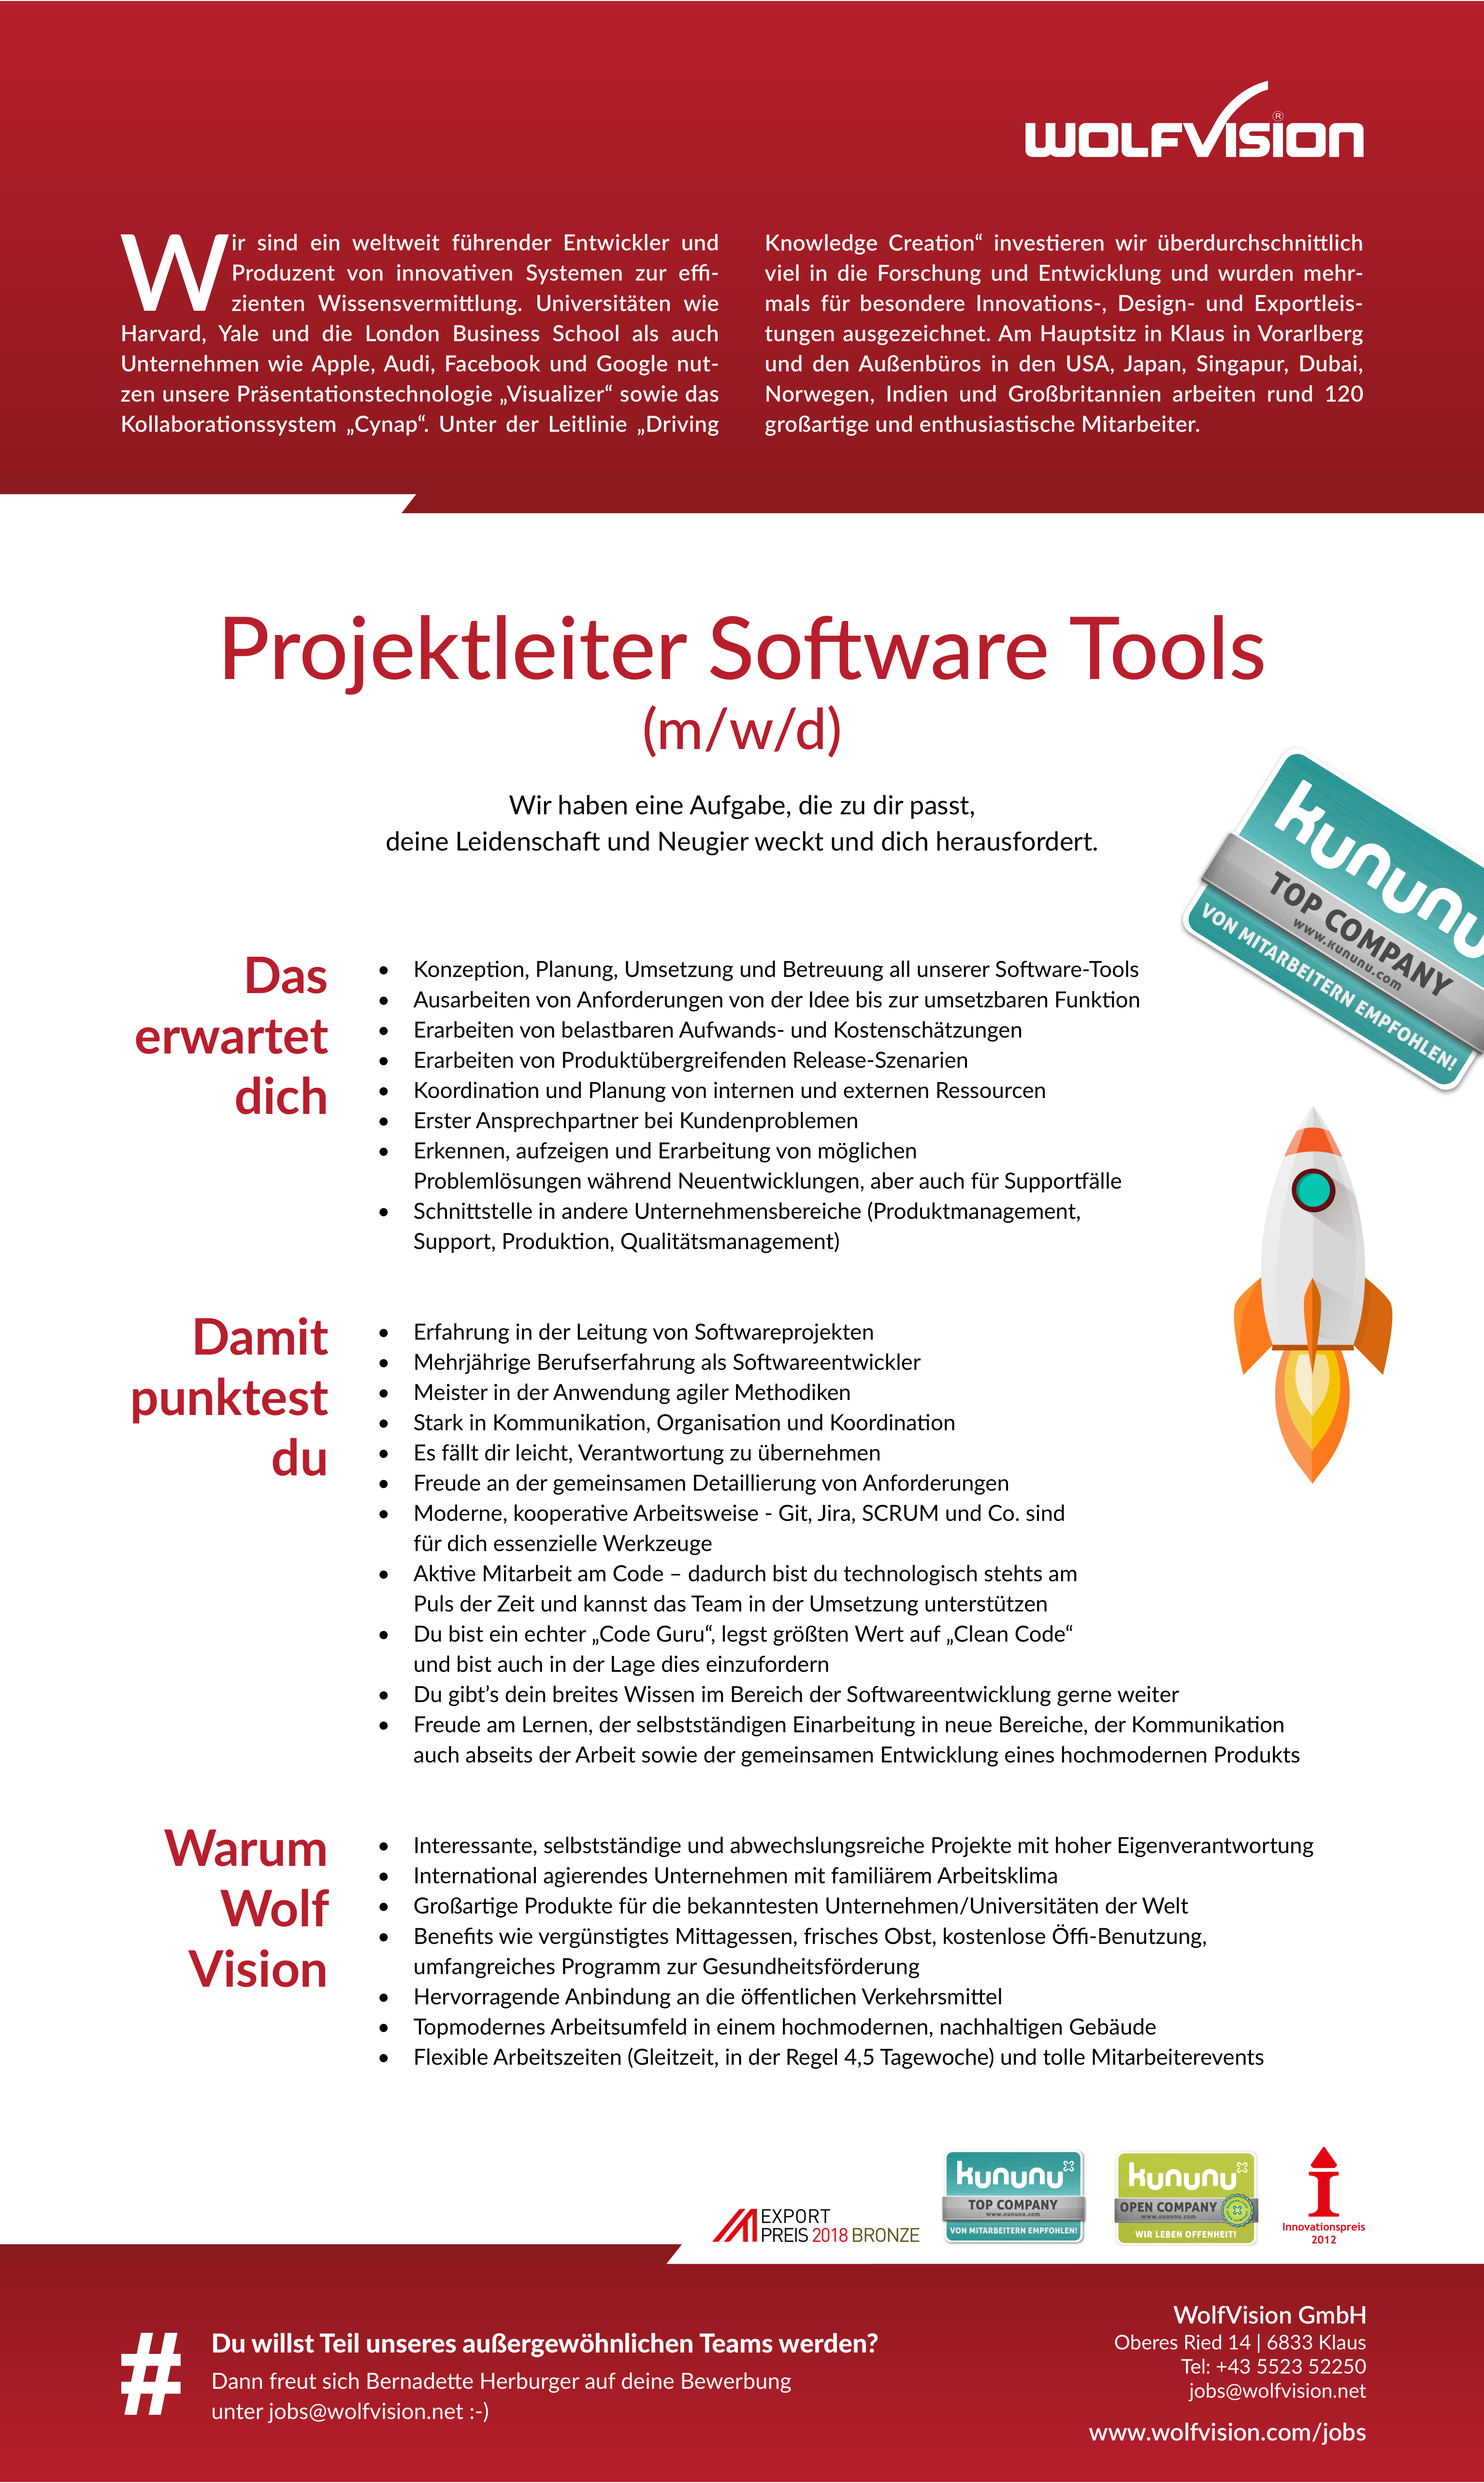 Projektleiter Software Tools (m/w/d)